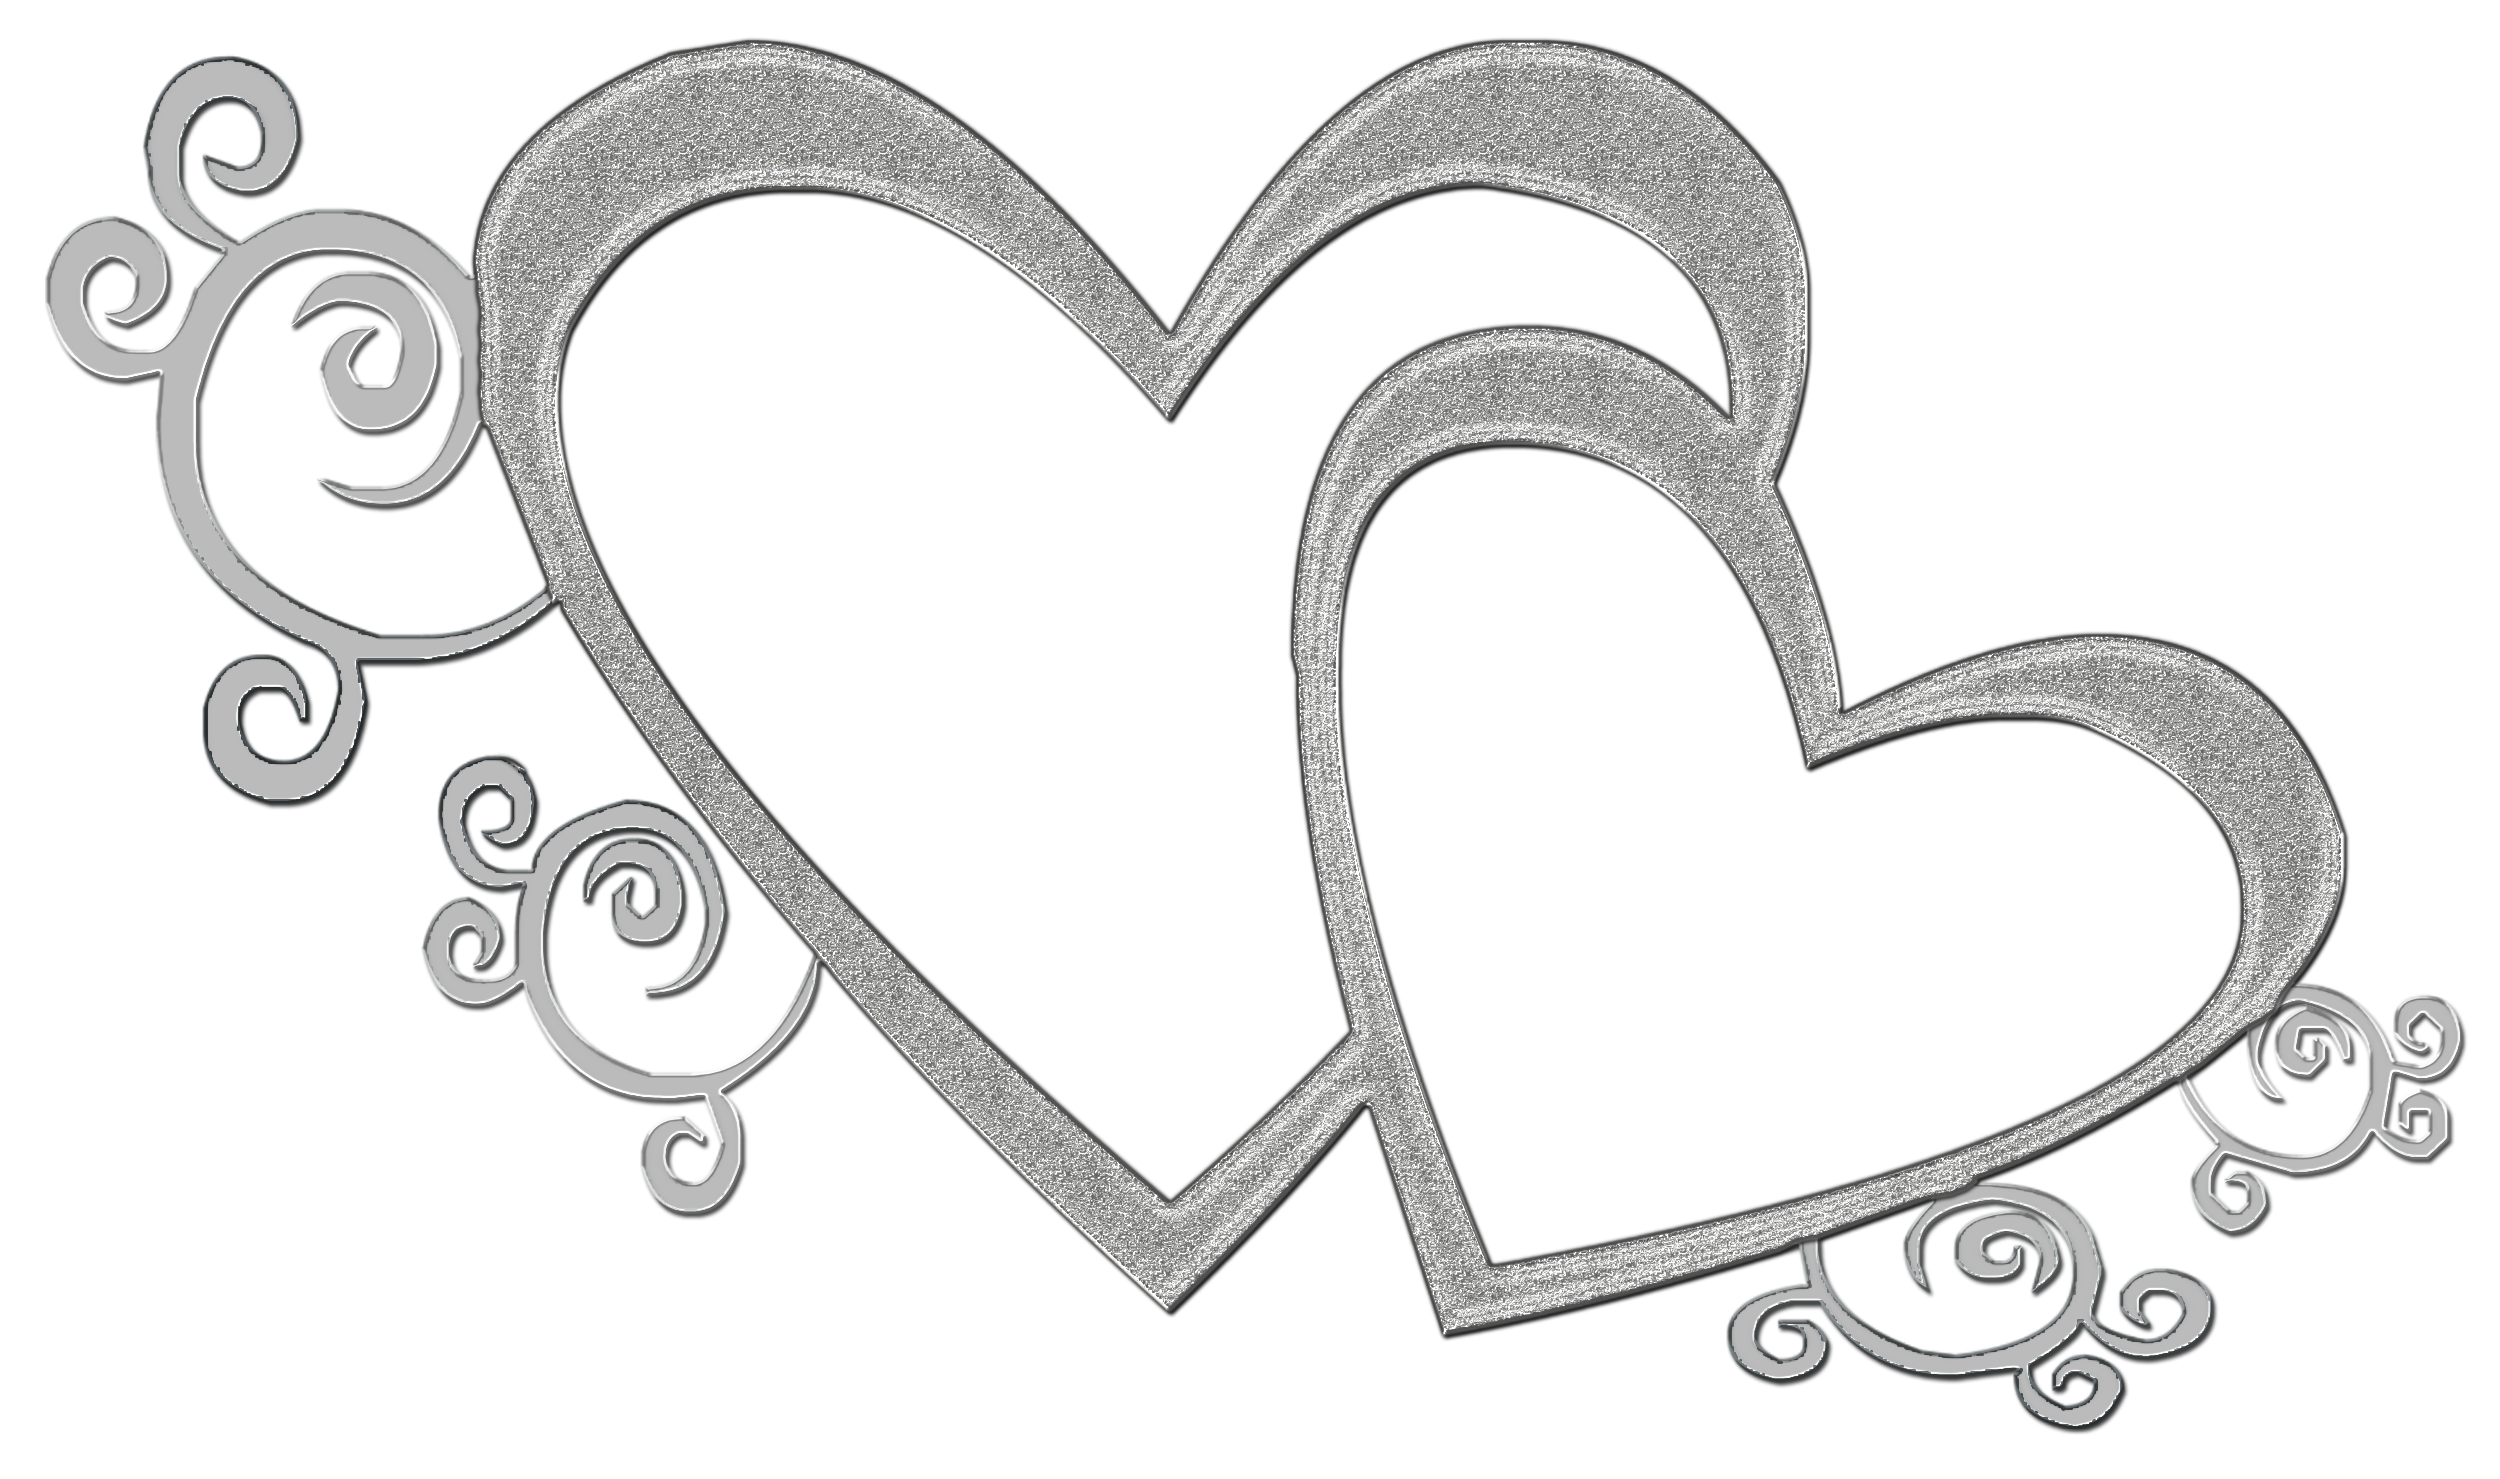 Heart Black And White Double Heart Clipa-Heart black and white double heart clipart black and white-16